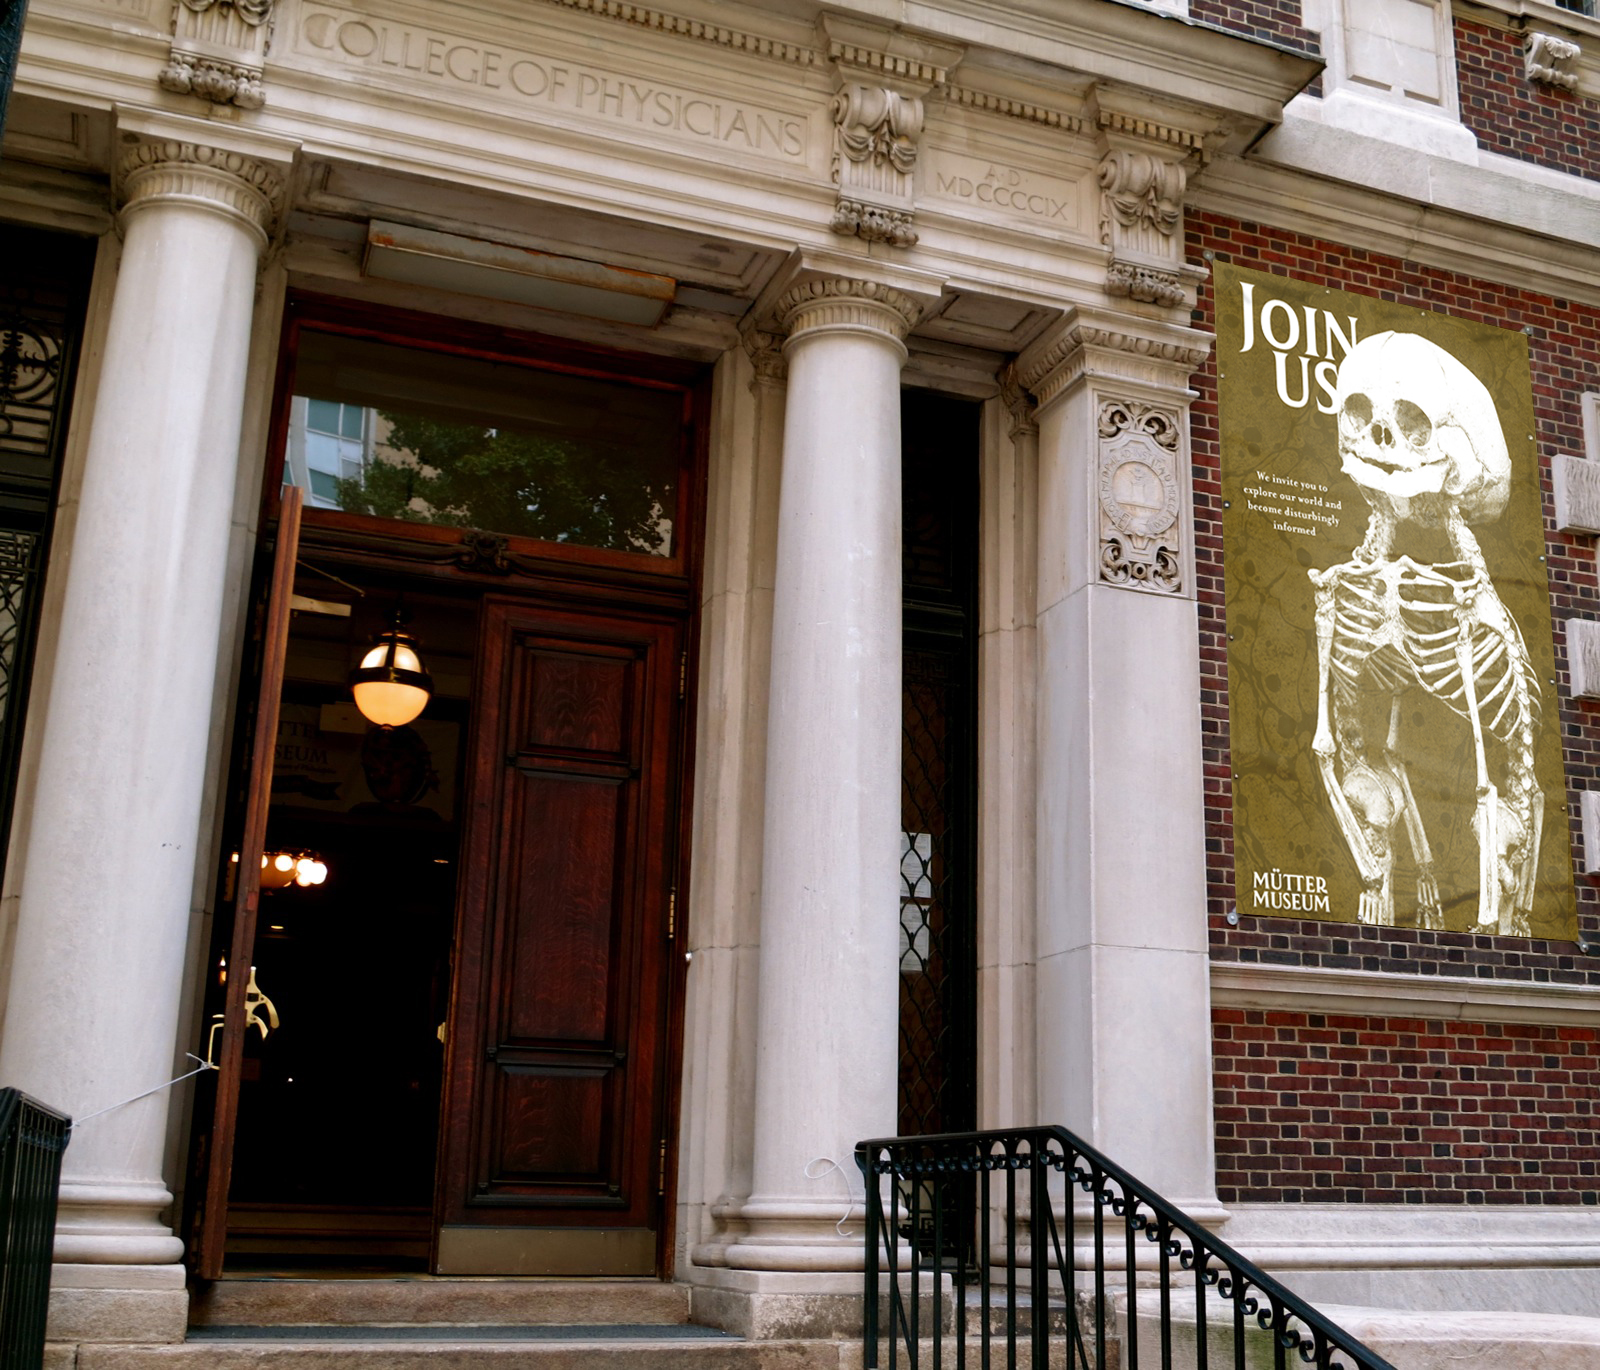 Mutter-Museum-Philadelphia-PA.jpg